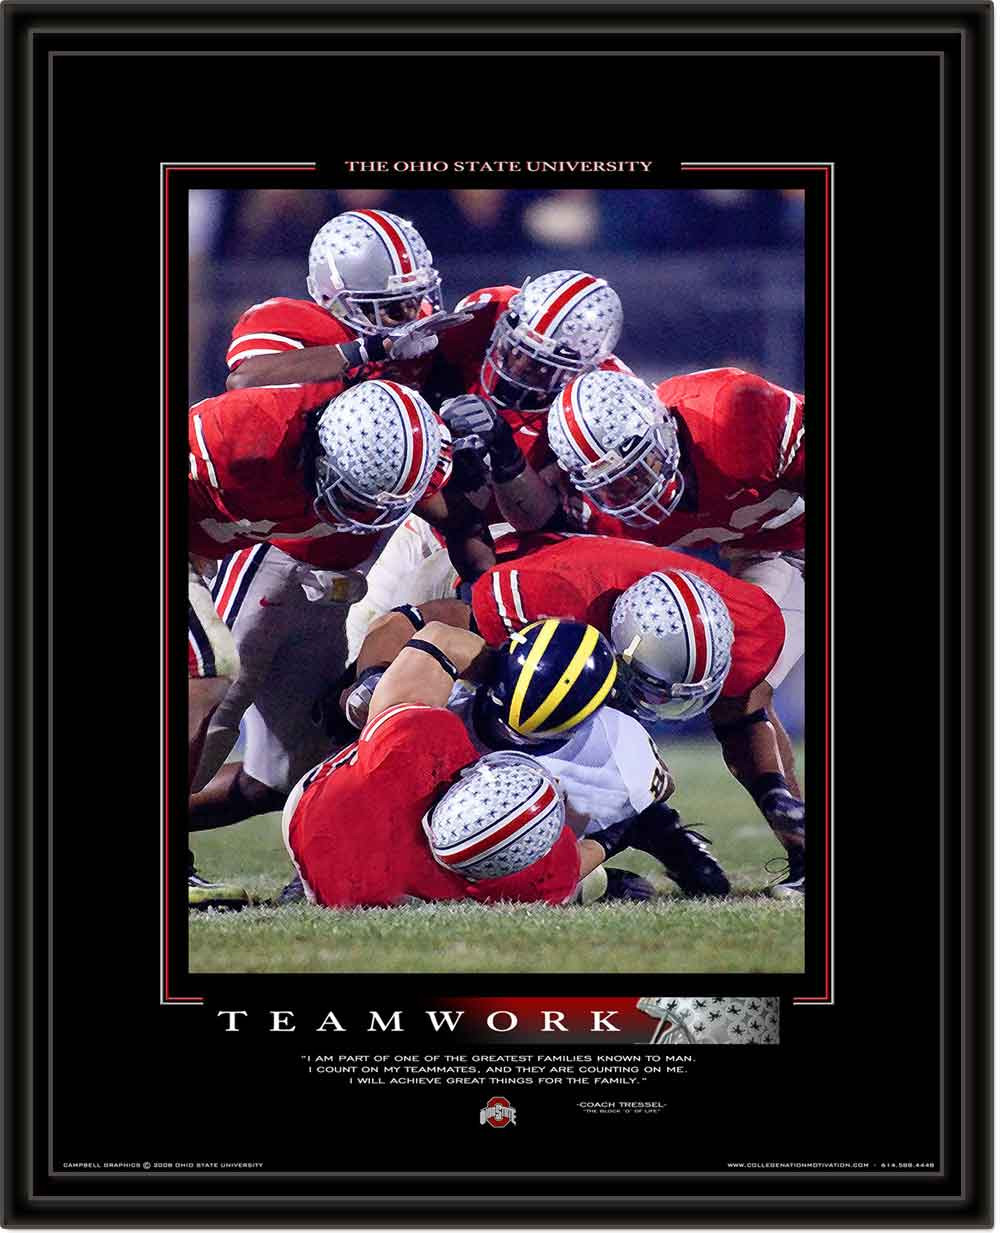 Ohio state framed teamwork motivational poster jeuxipadfo Image collections